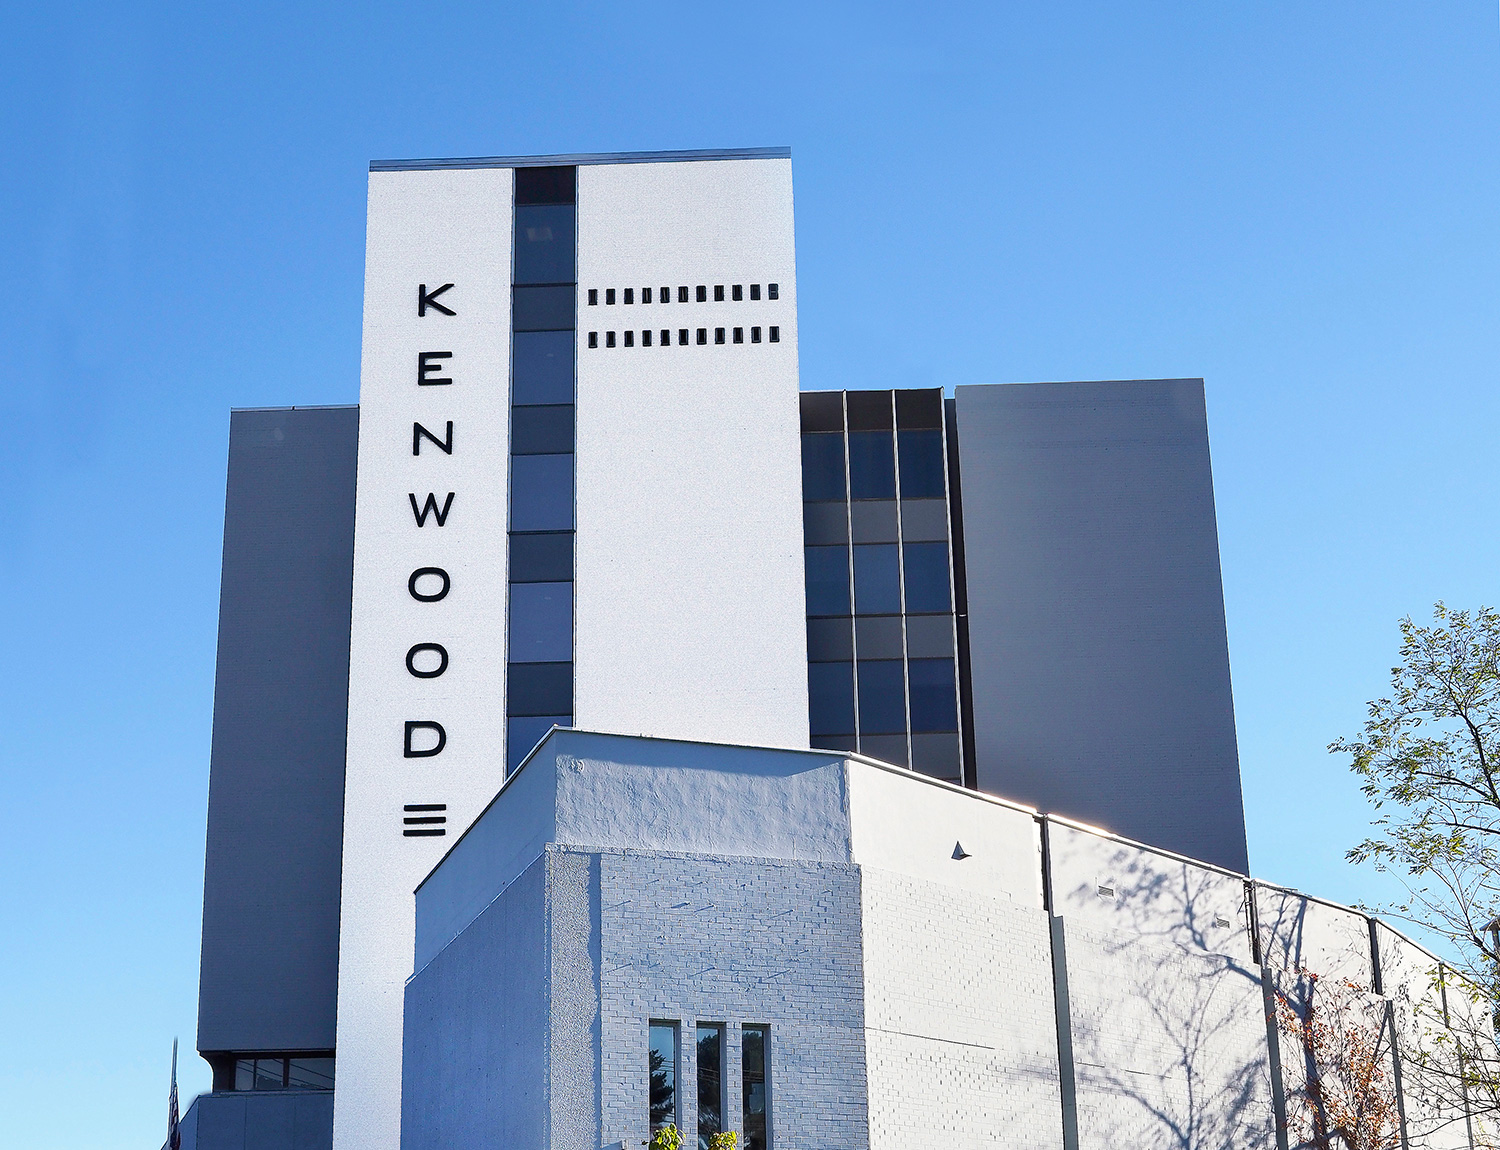 About Kenwood